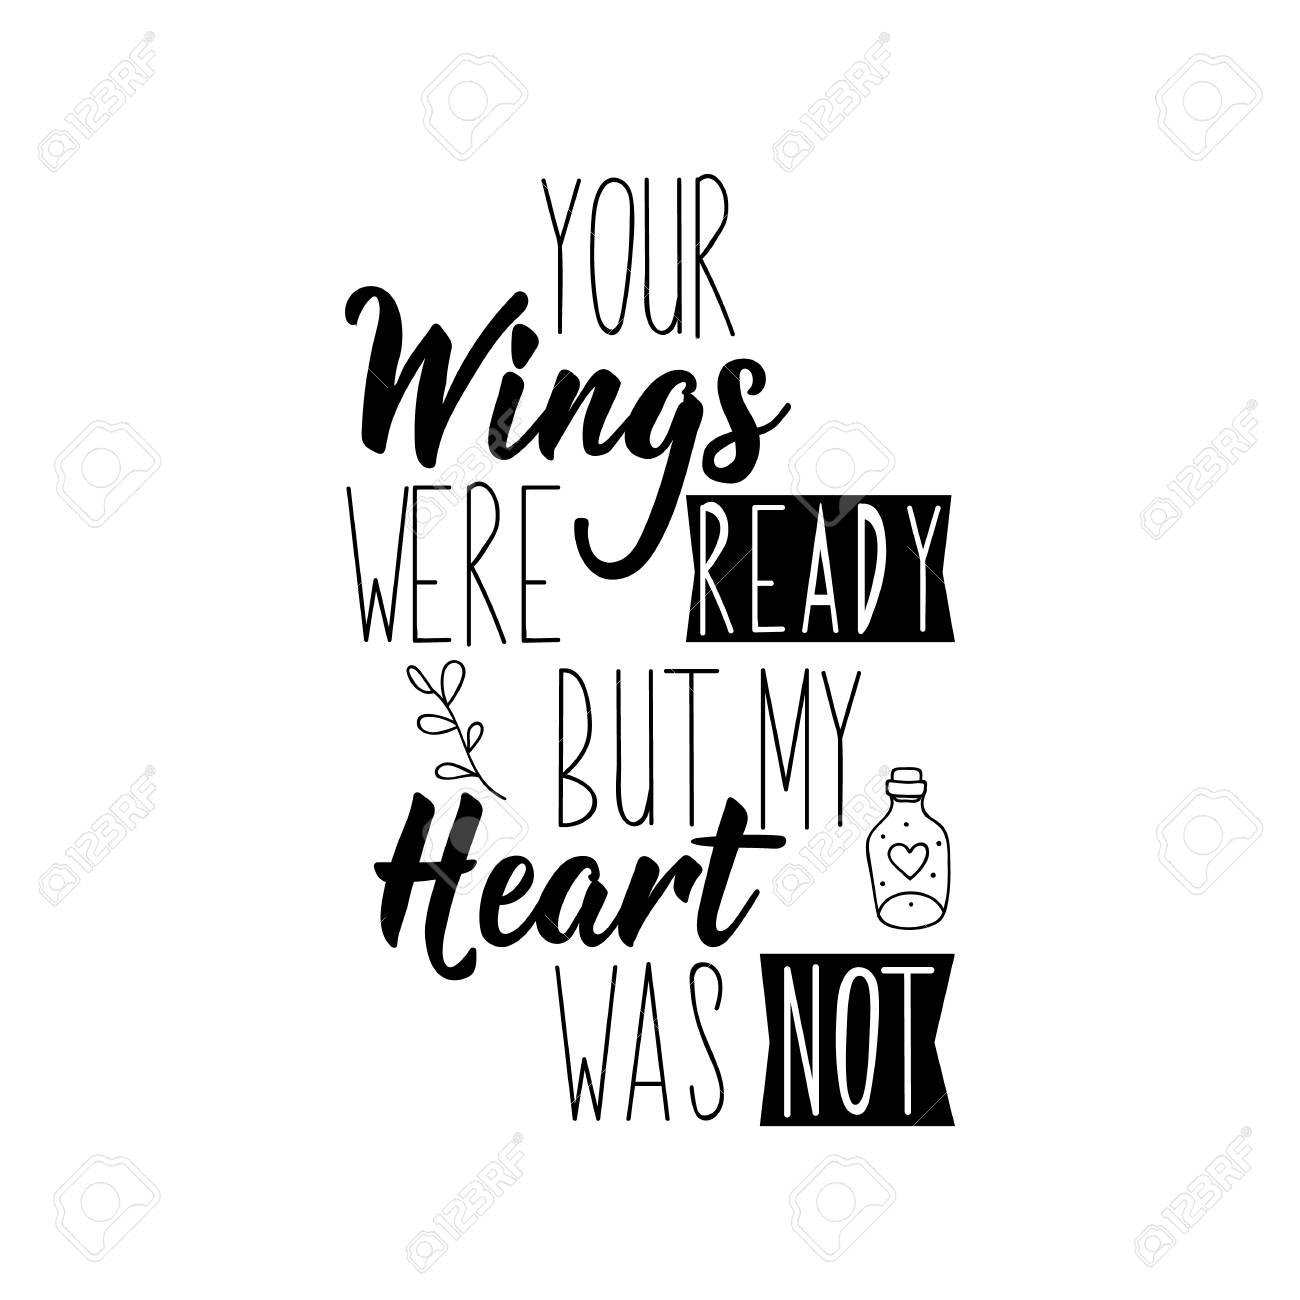 Your Wings Were Ready But My Heart Was Not Funny Lettering